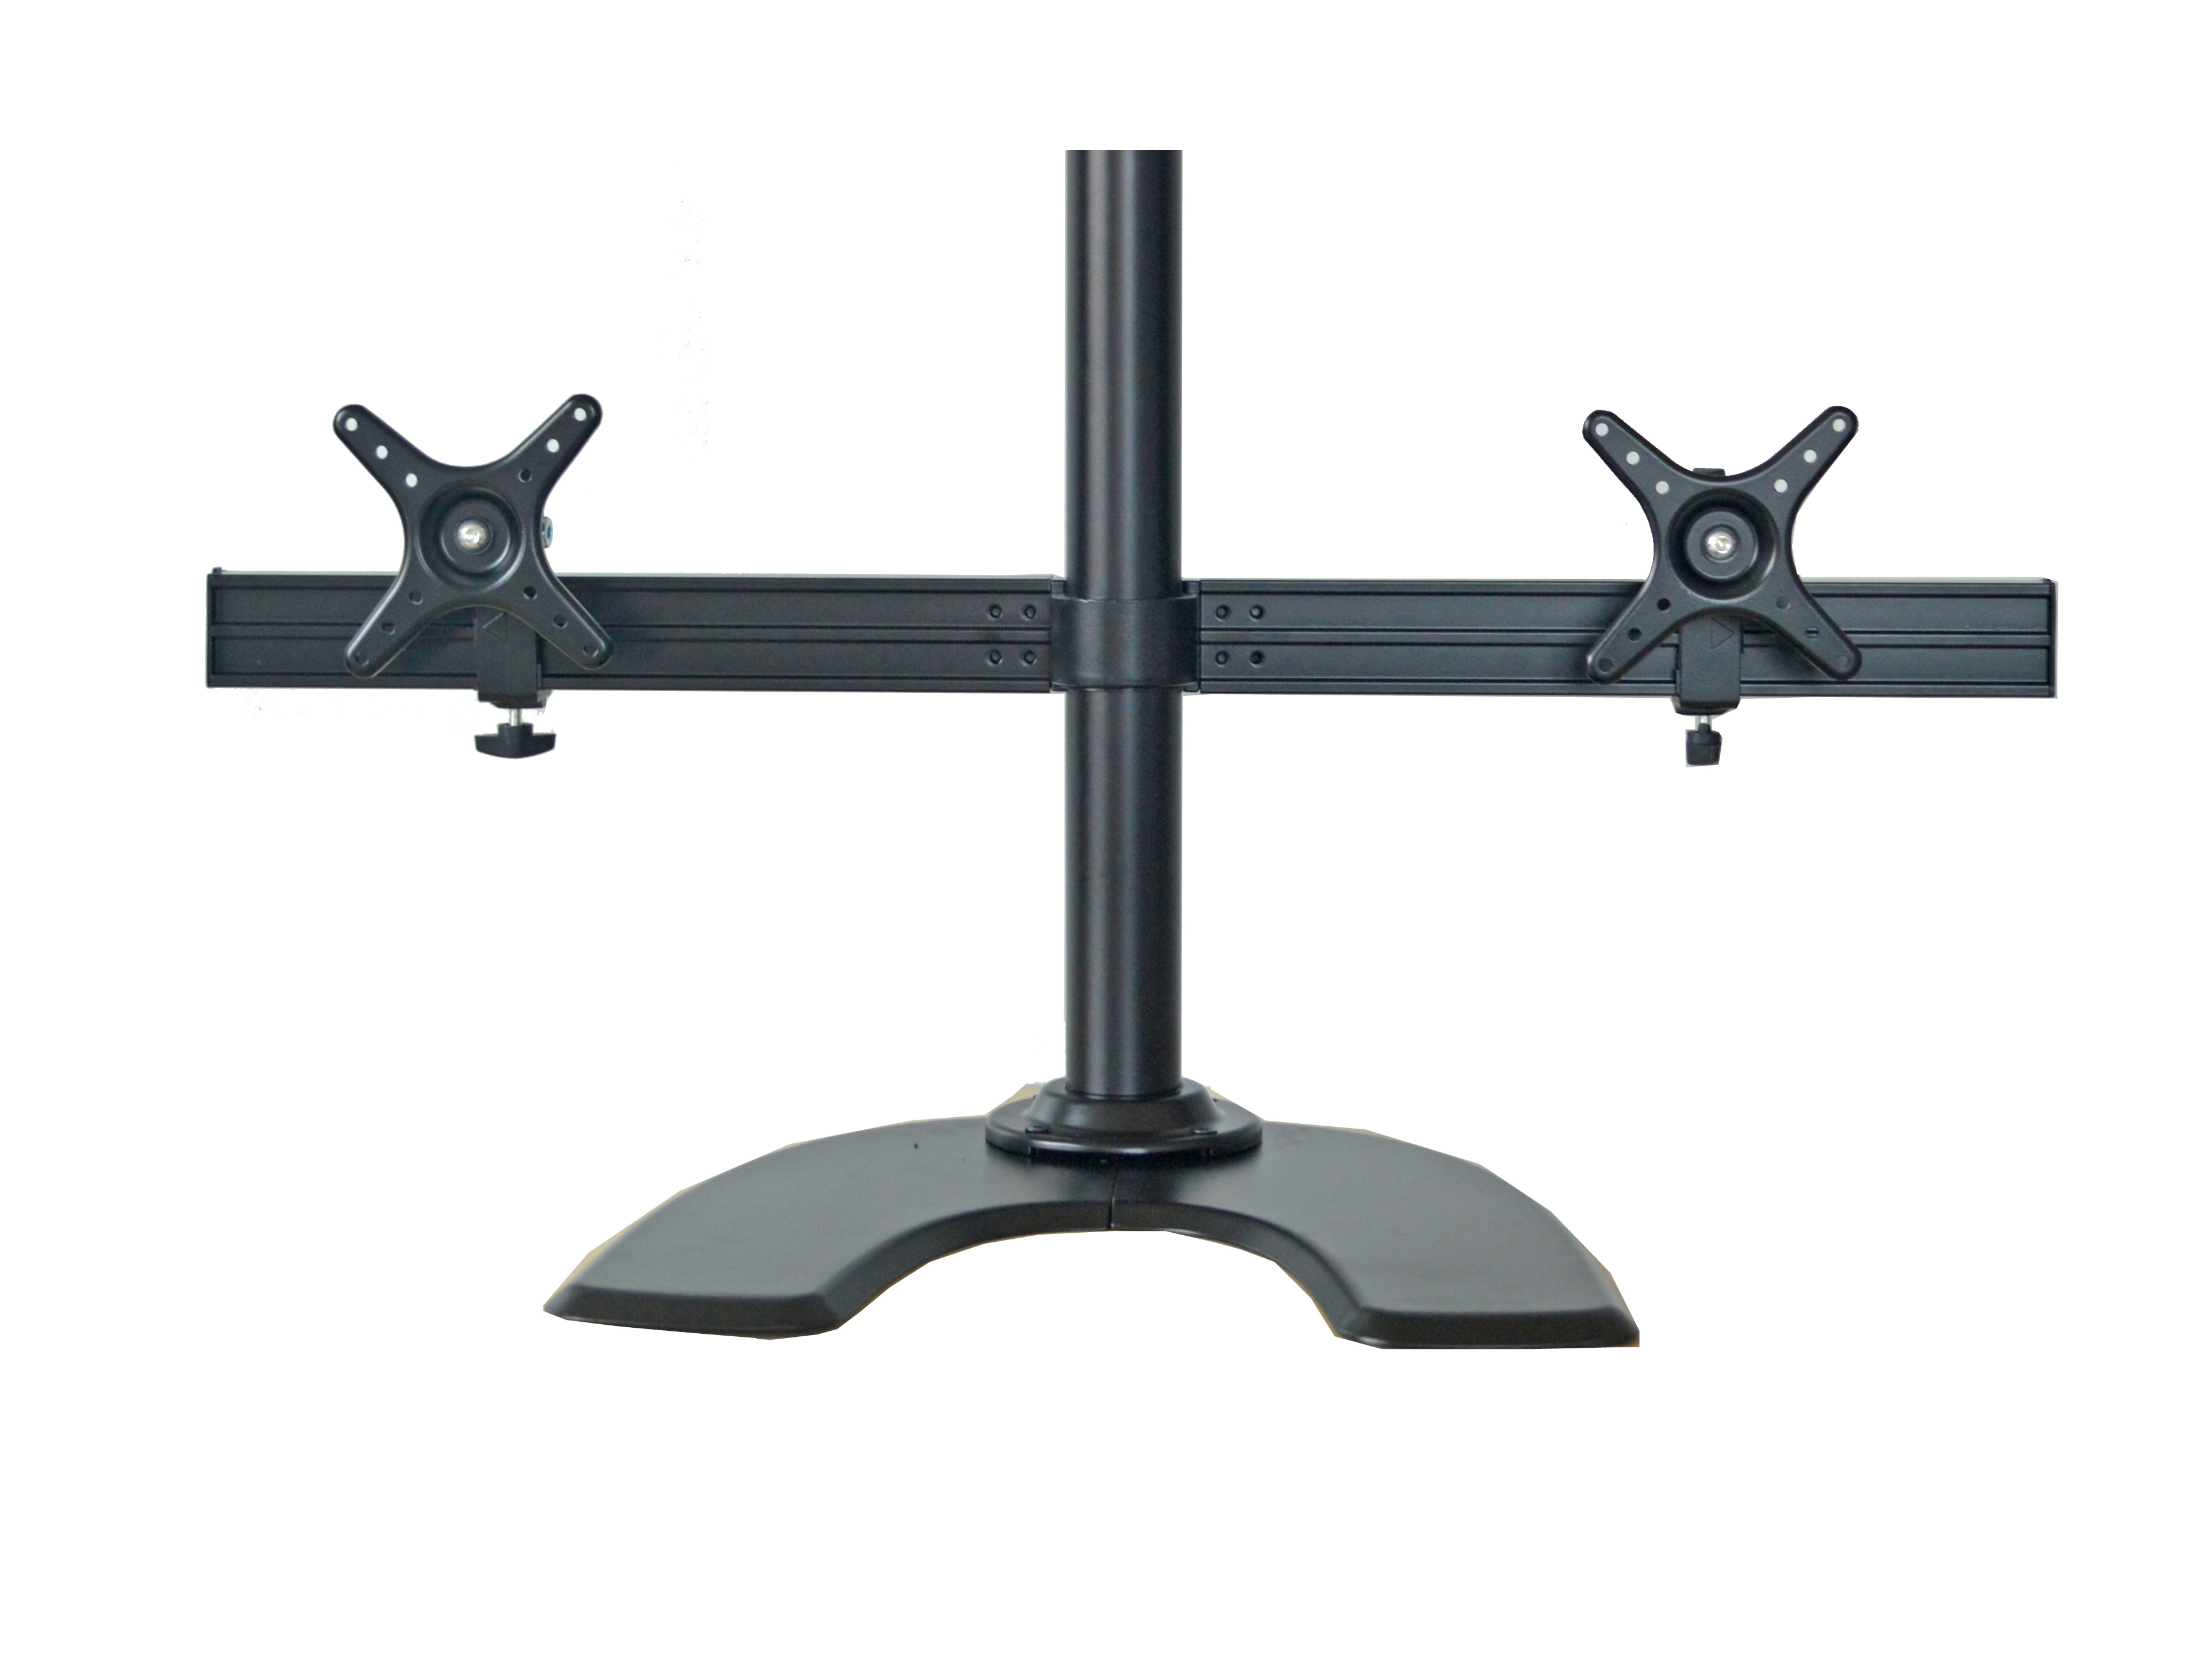 Avr232t Dual Monitor Desktop Stand For Up To 27 Tv